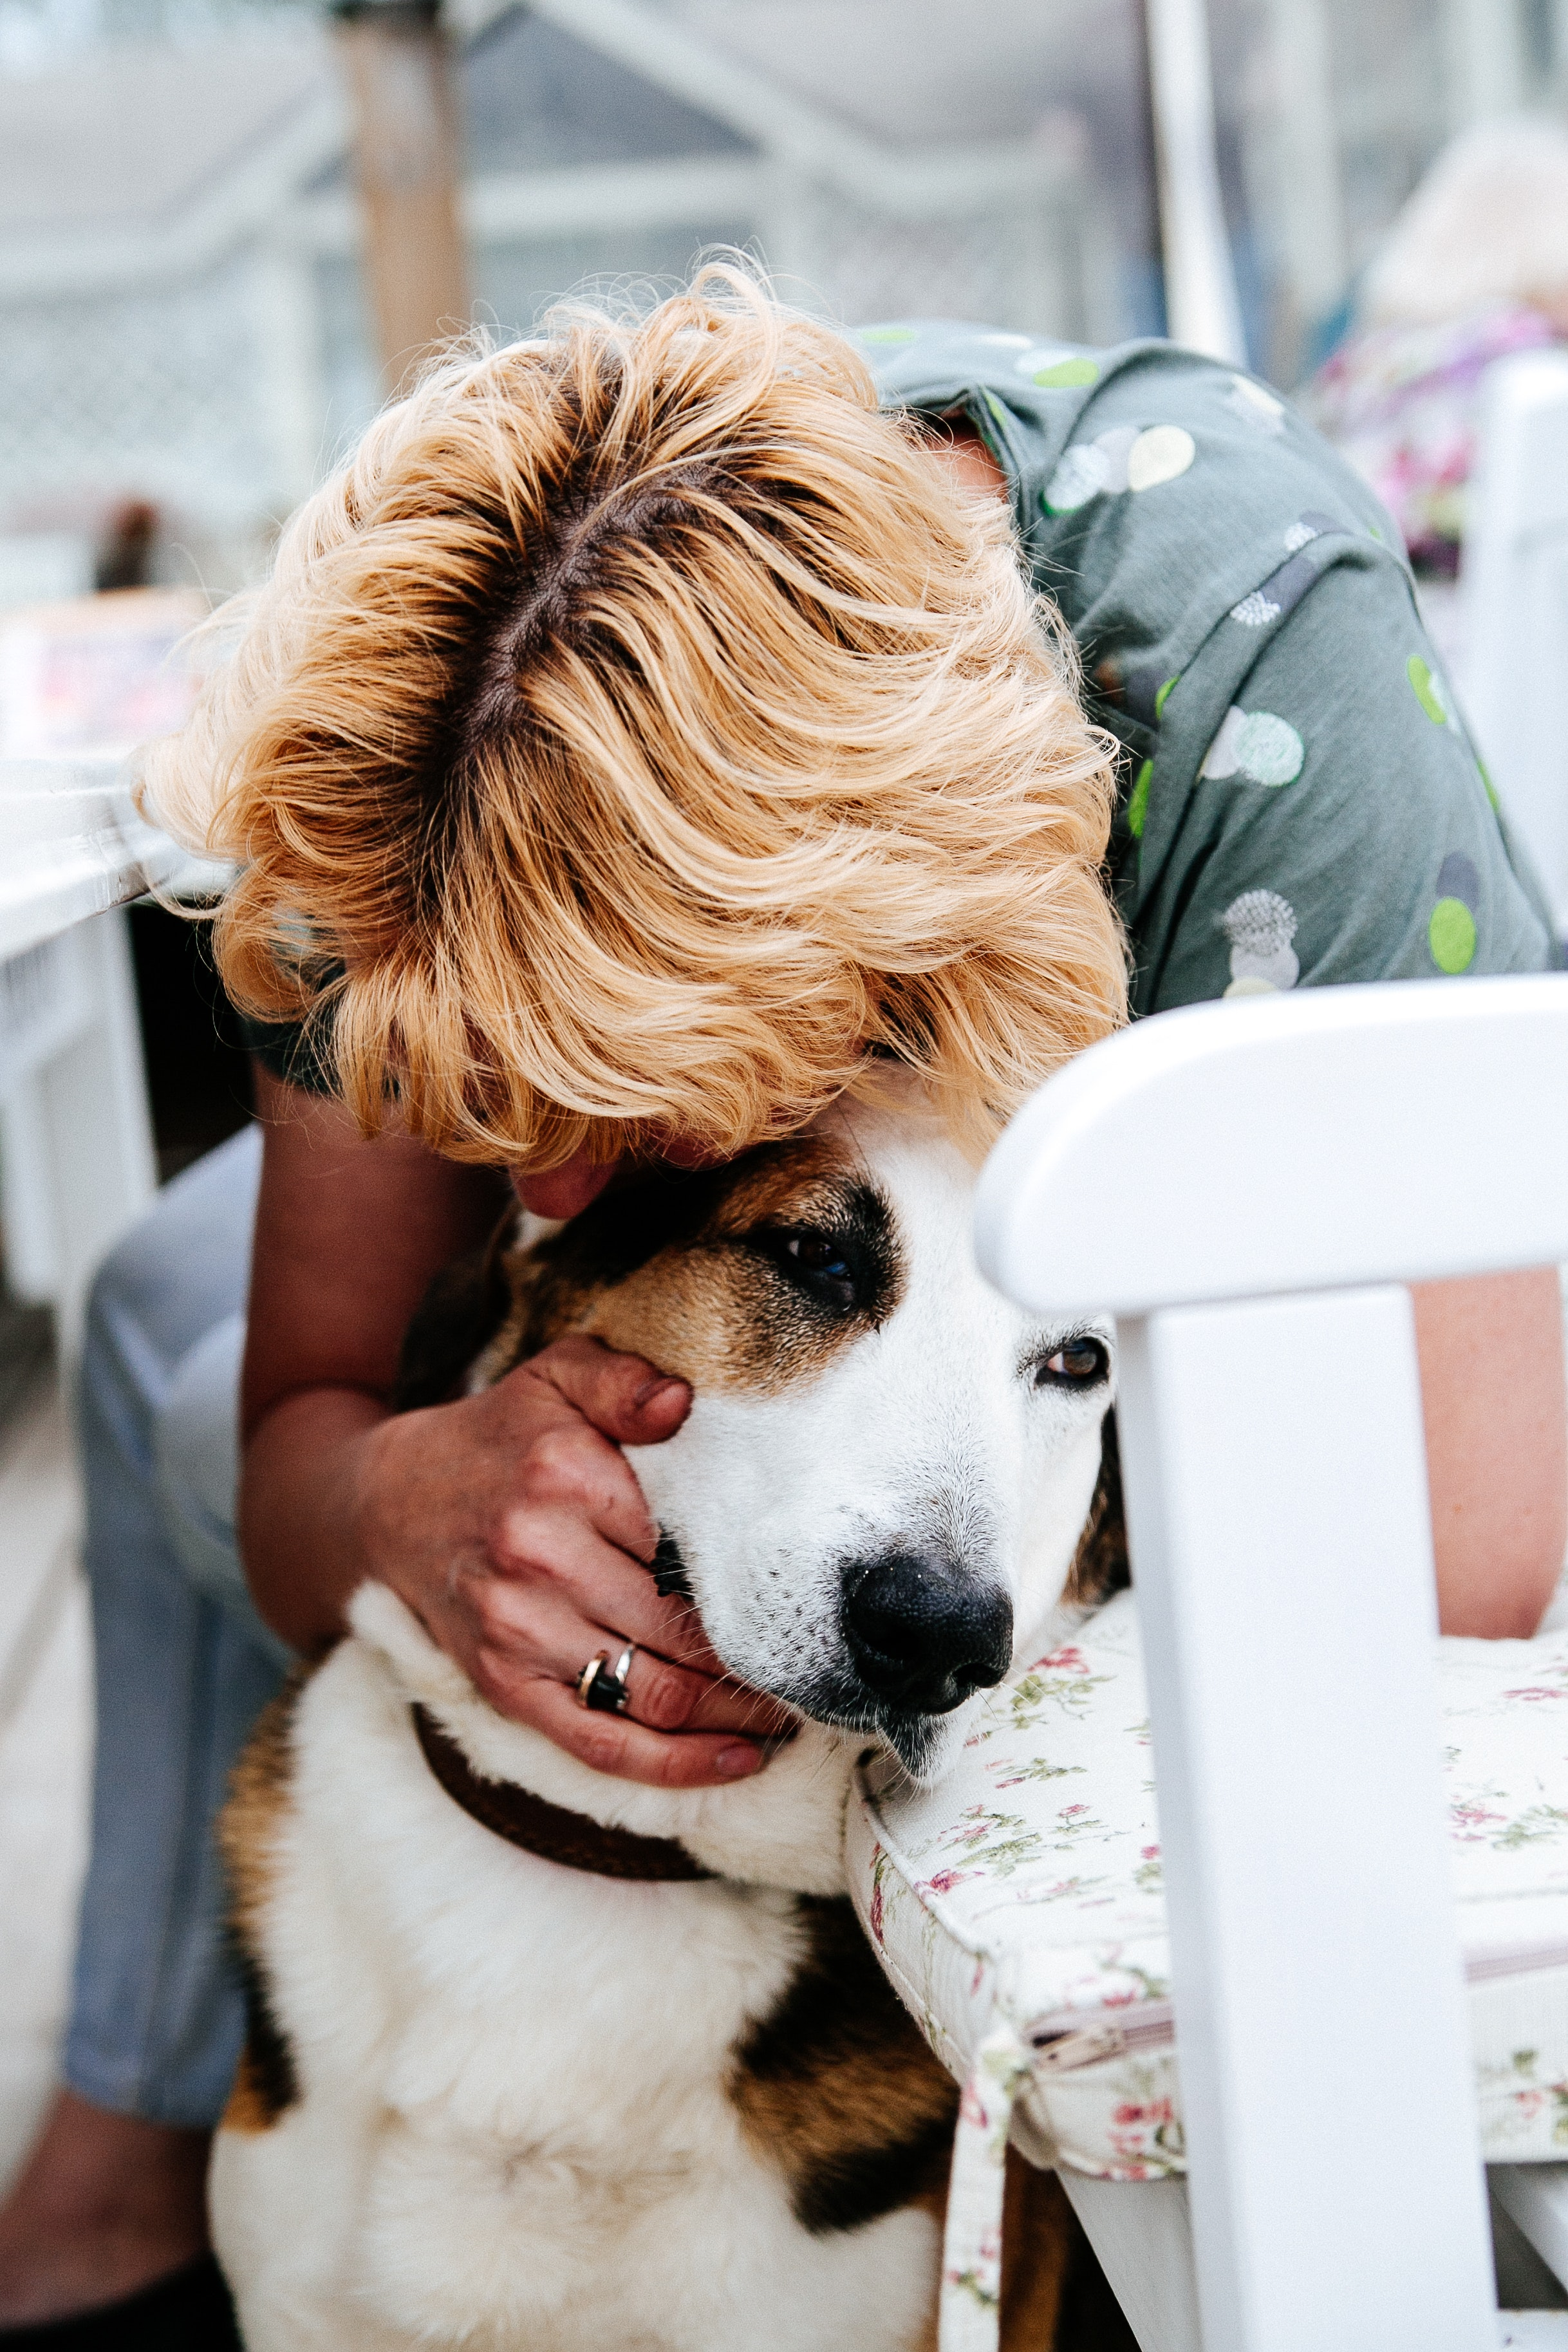 A woman hugs a brown and white dog